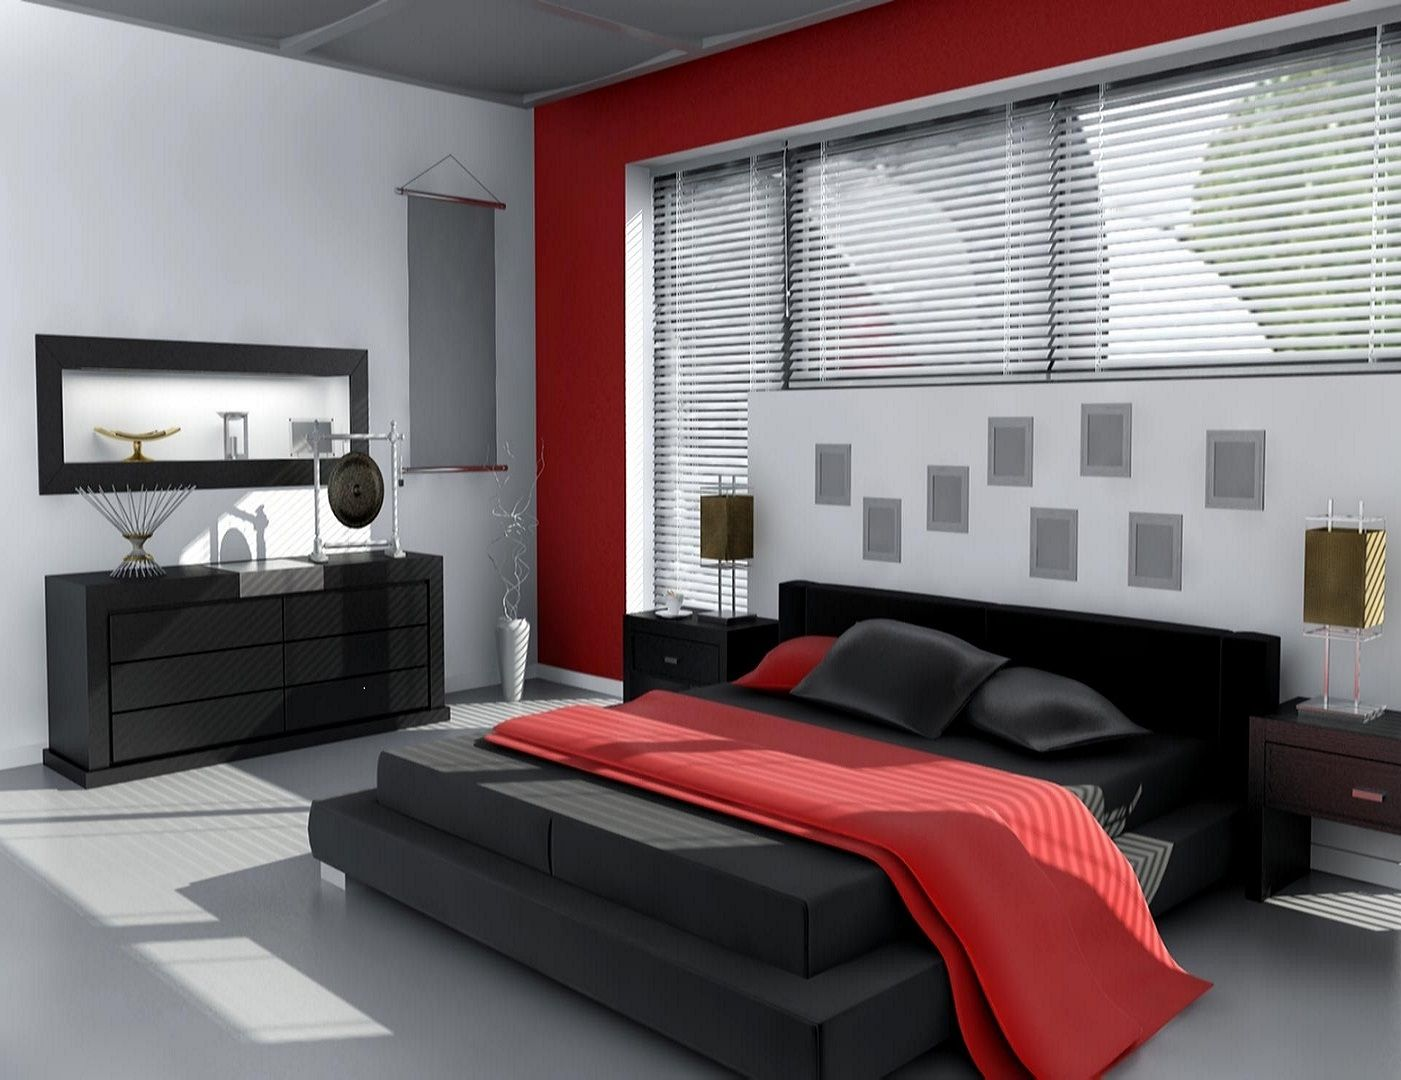 Epic Red And Grey Bedroom About Remodel Home Interior Design Ideas ...